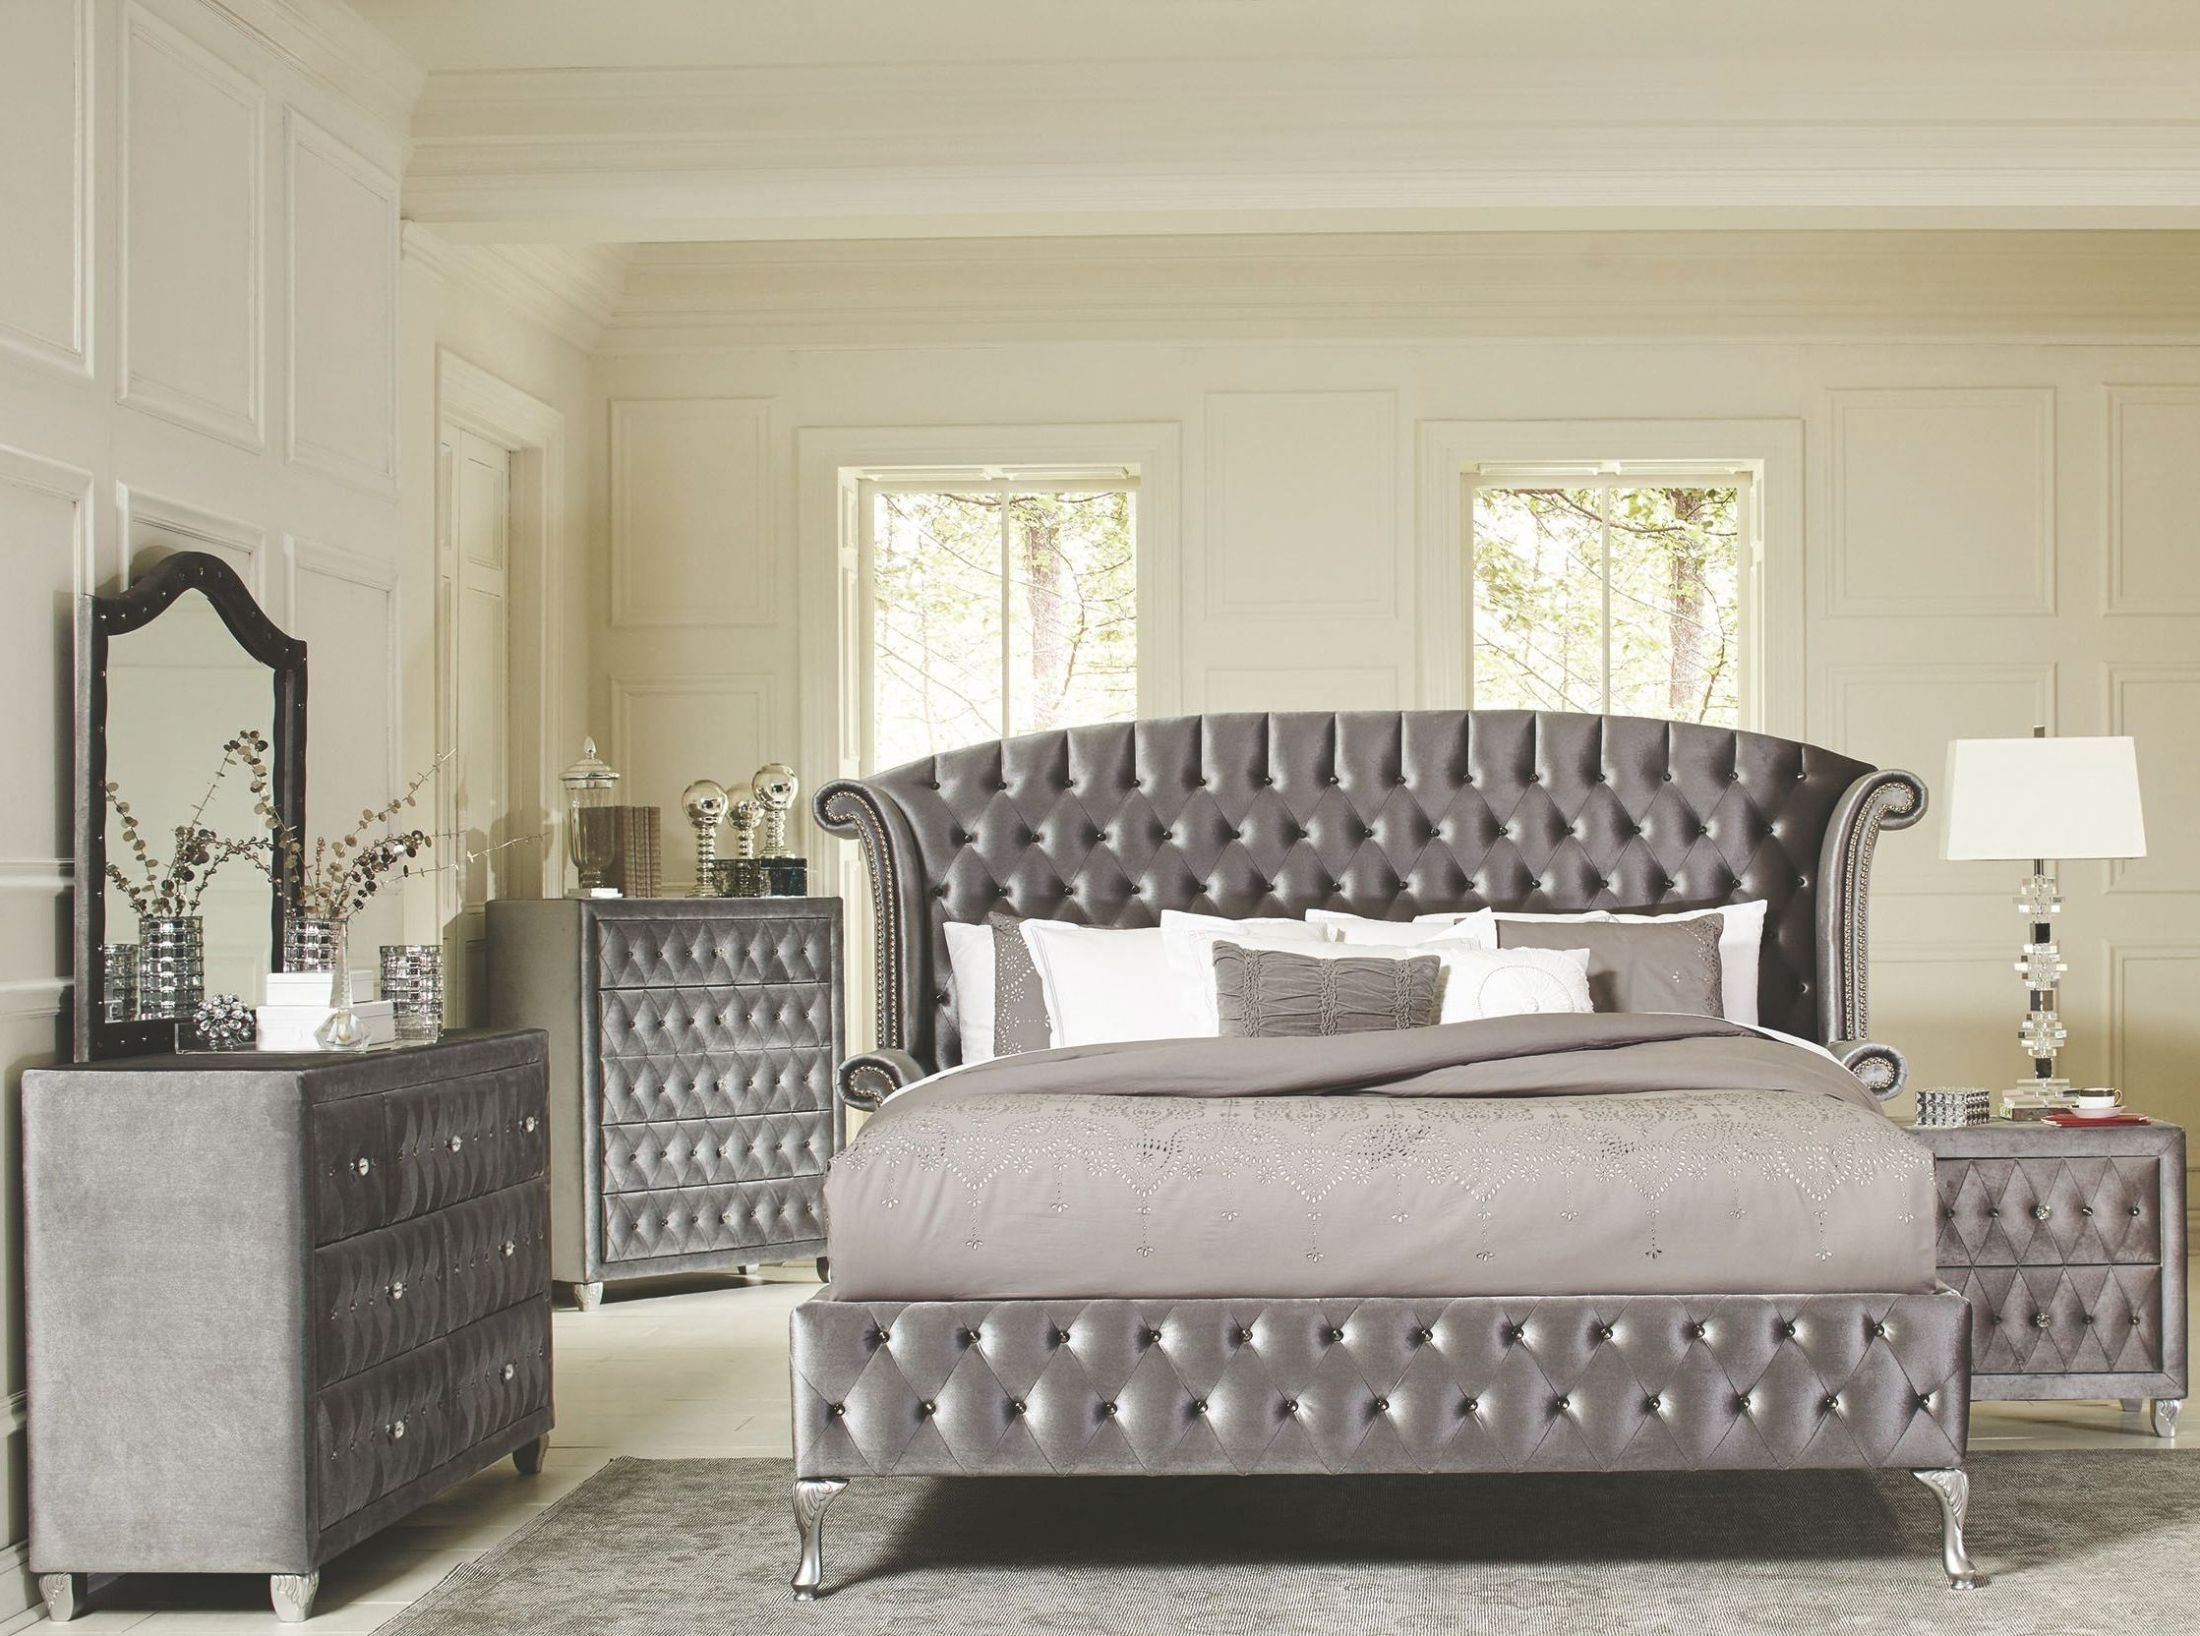 Coaster Bedroom Queen Bed